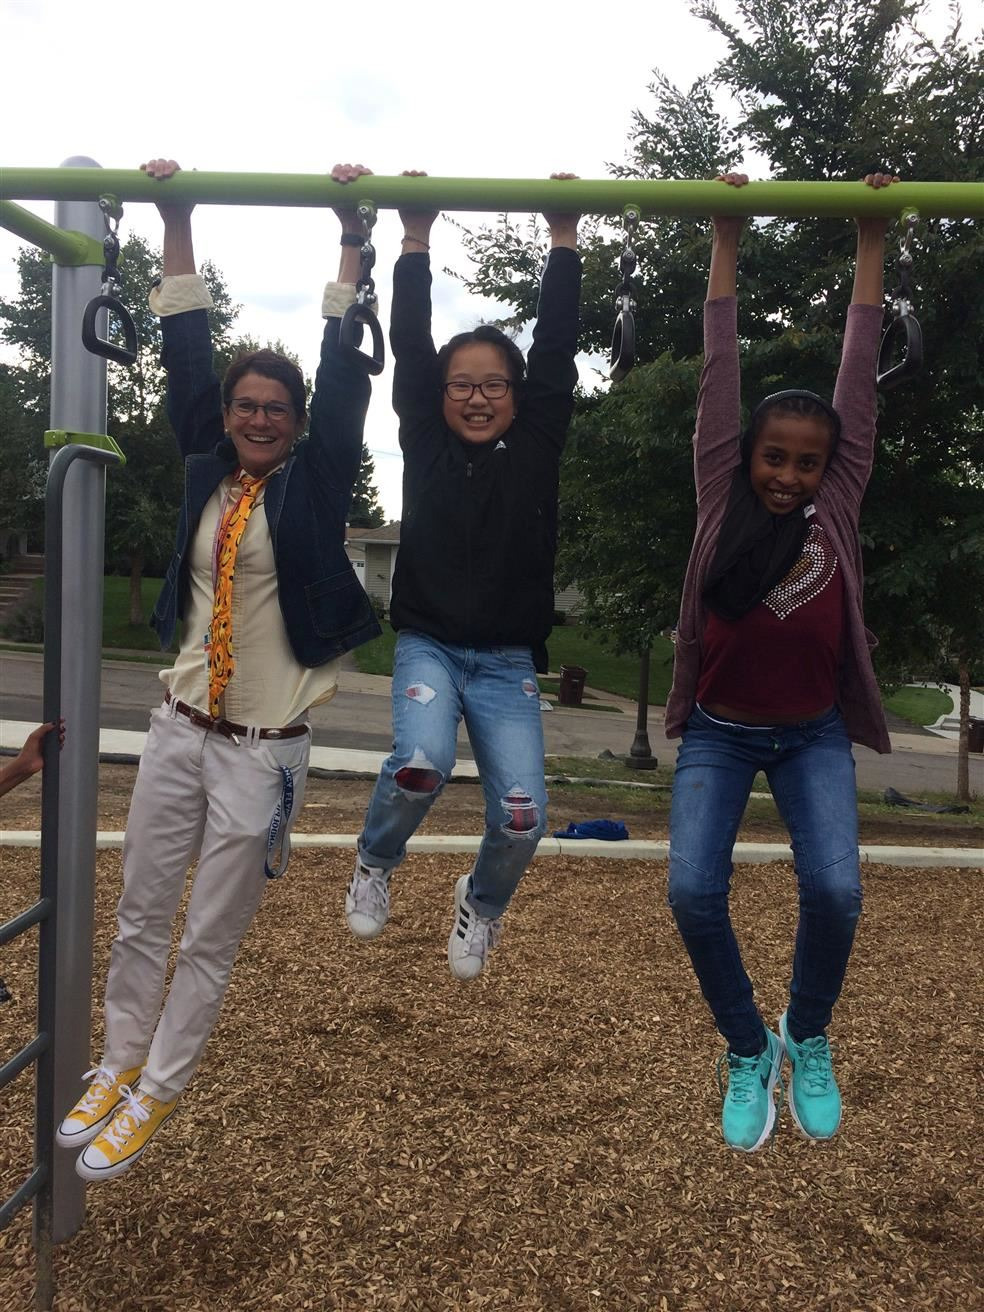 Principal with students on the bars